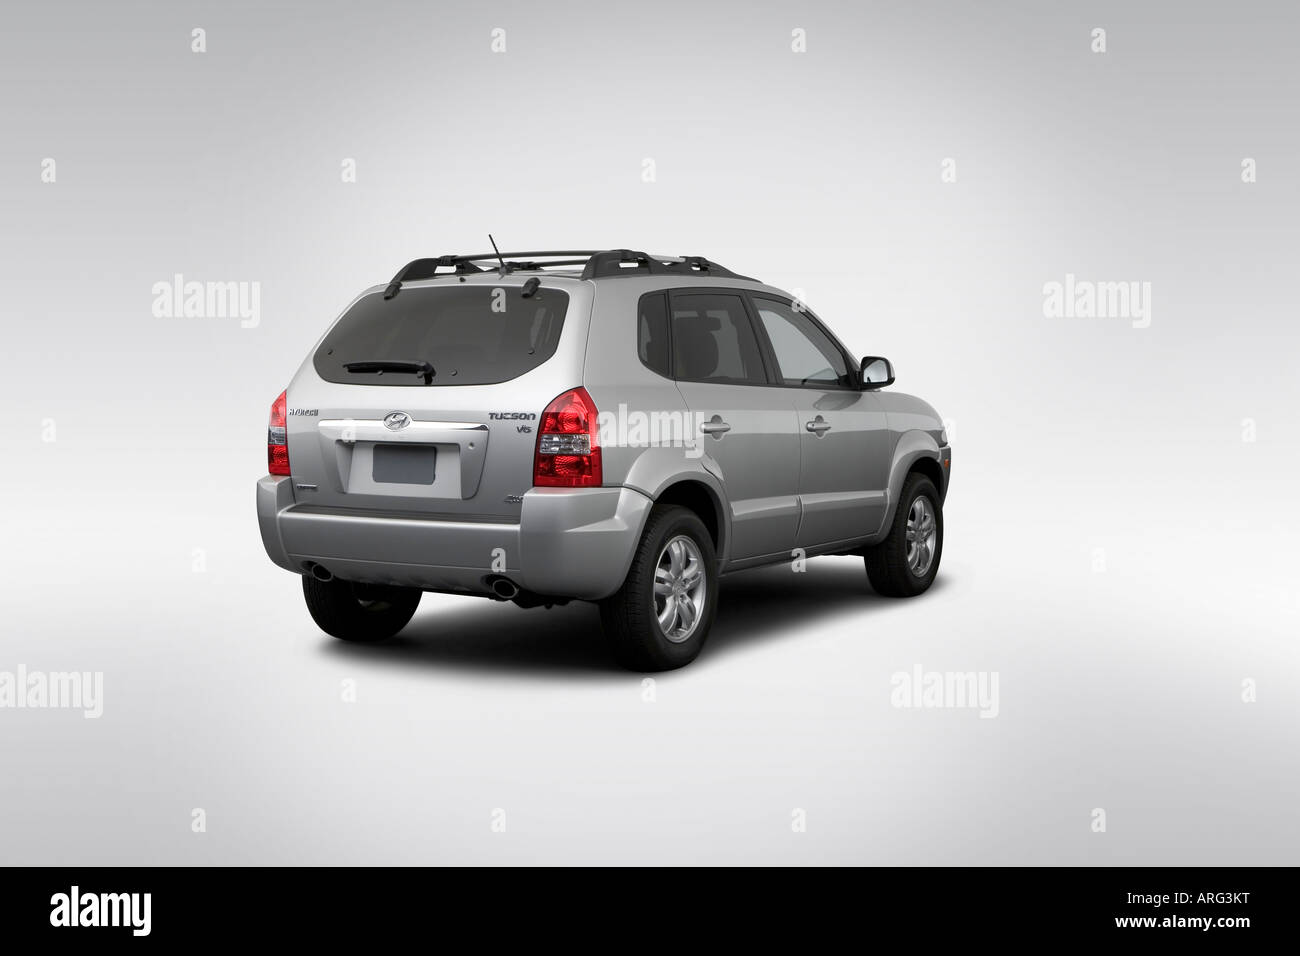 2007 hyundai tucson limited in silver rear angle view. Black Bedroom Furniture Sets. Home Design Ideas